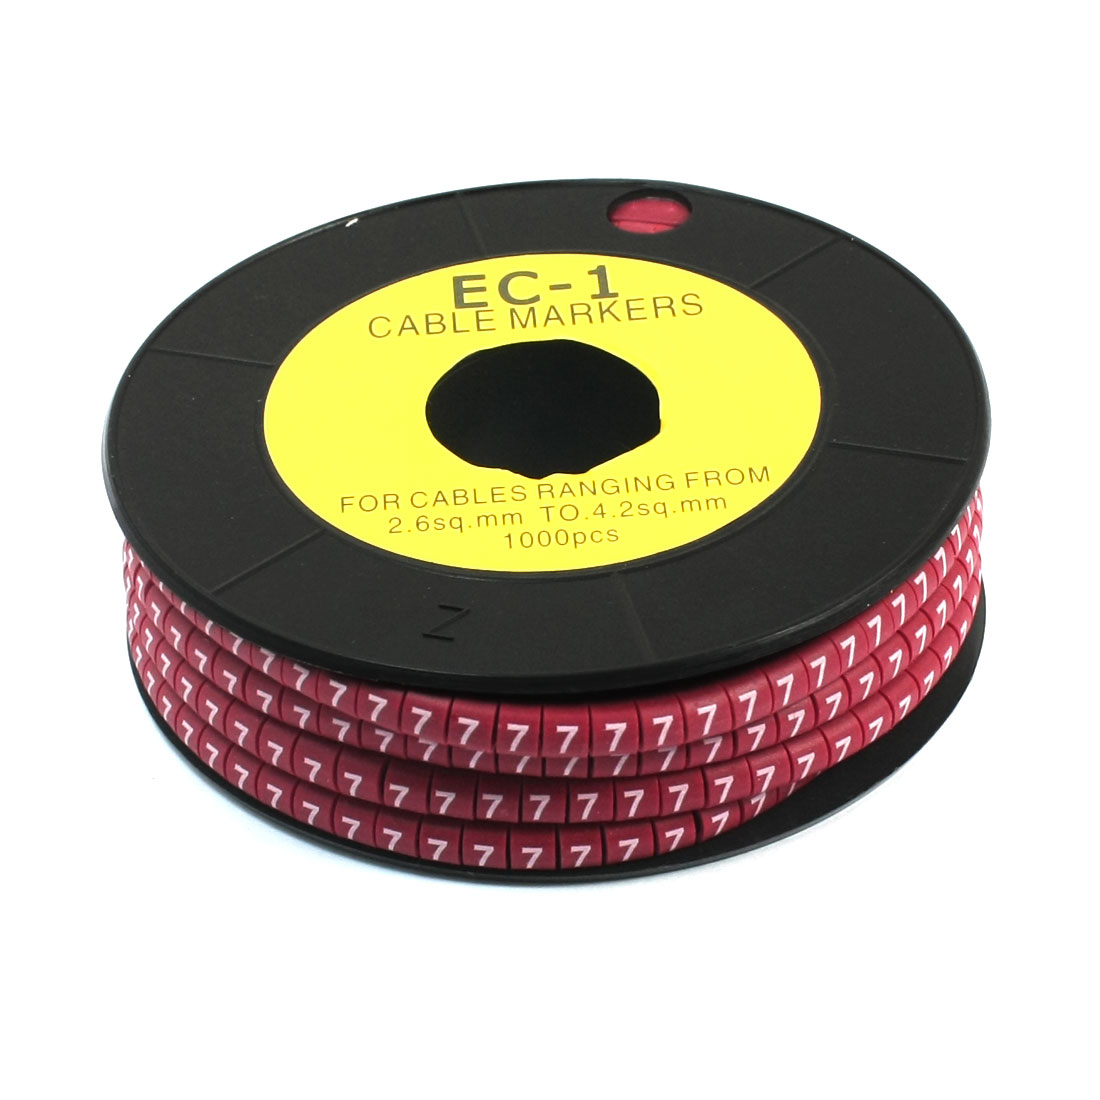 1000Pcs EC-1 Arabic Numeral 7 Print Red Flexible PVC Concave Shape Wire Cable Markers Roll for 2.6-4.2mm2 Tube Label